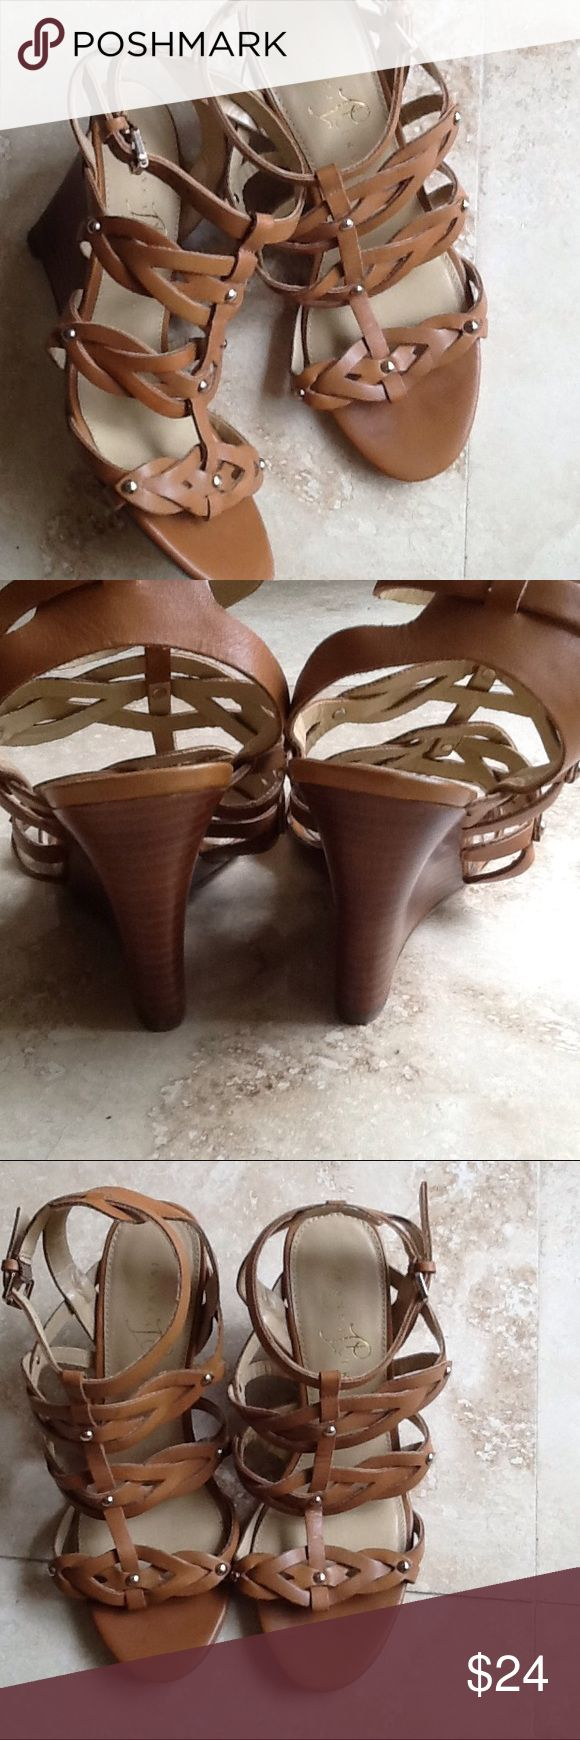 Ivanka Trump Gladiator Wedge Sandals Leather sandals. This brand runs big so they fit more like an 8. I will post them under both 71/2 and 8. I only have one pair for sale and price is firm. If you know this designer then you know it runs big. These are marked 7 1/2 on bottom  of shoe. In excellent used condition. Ivanka Trump Shoes Wedges